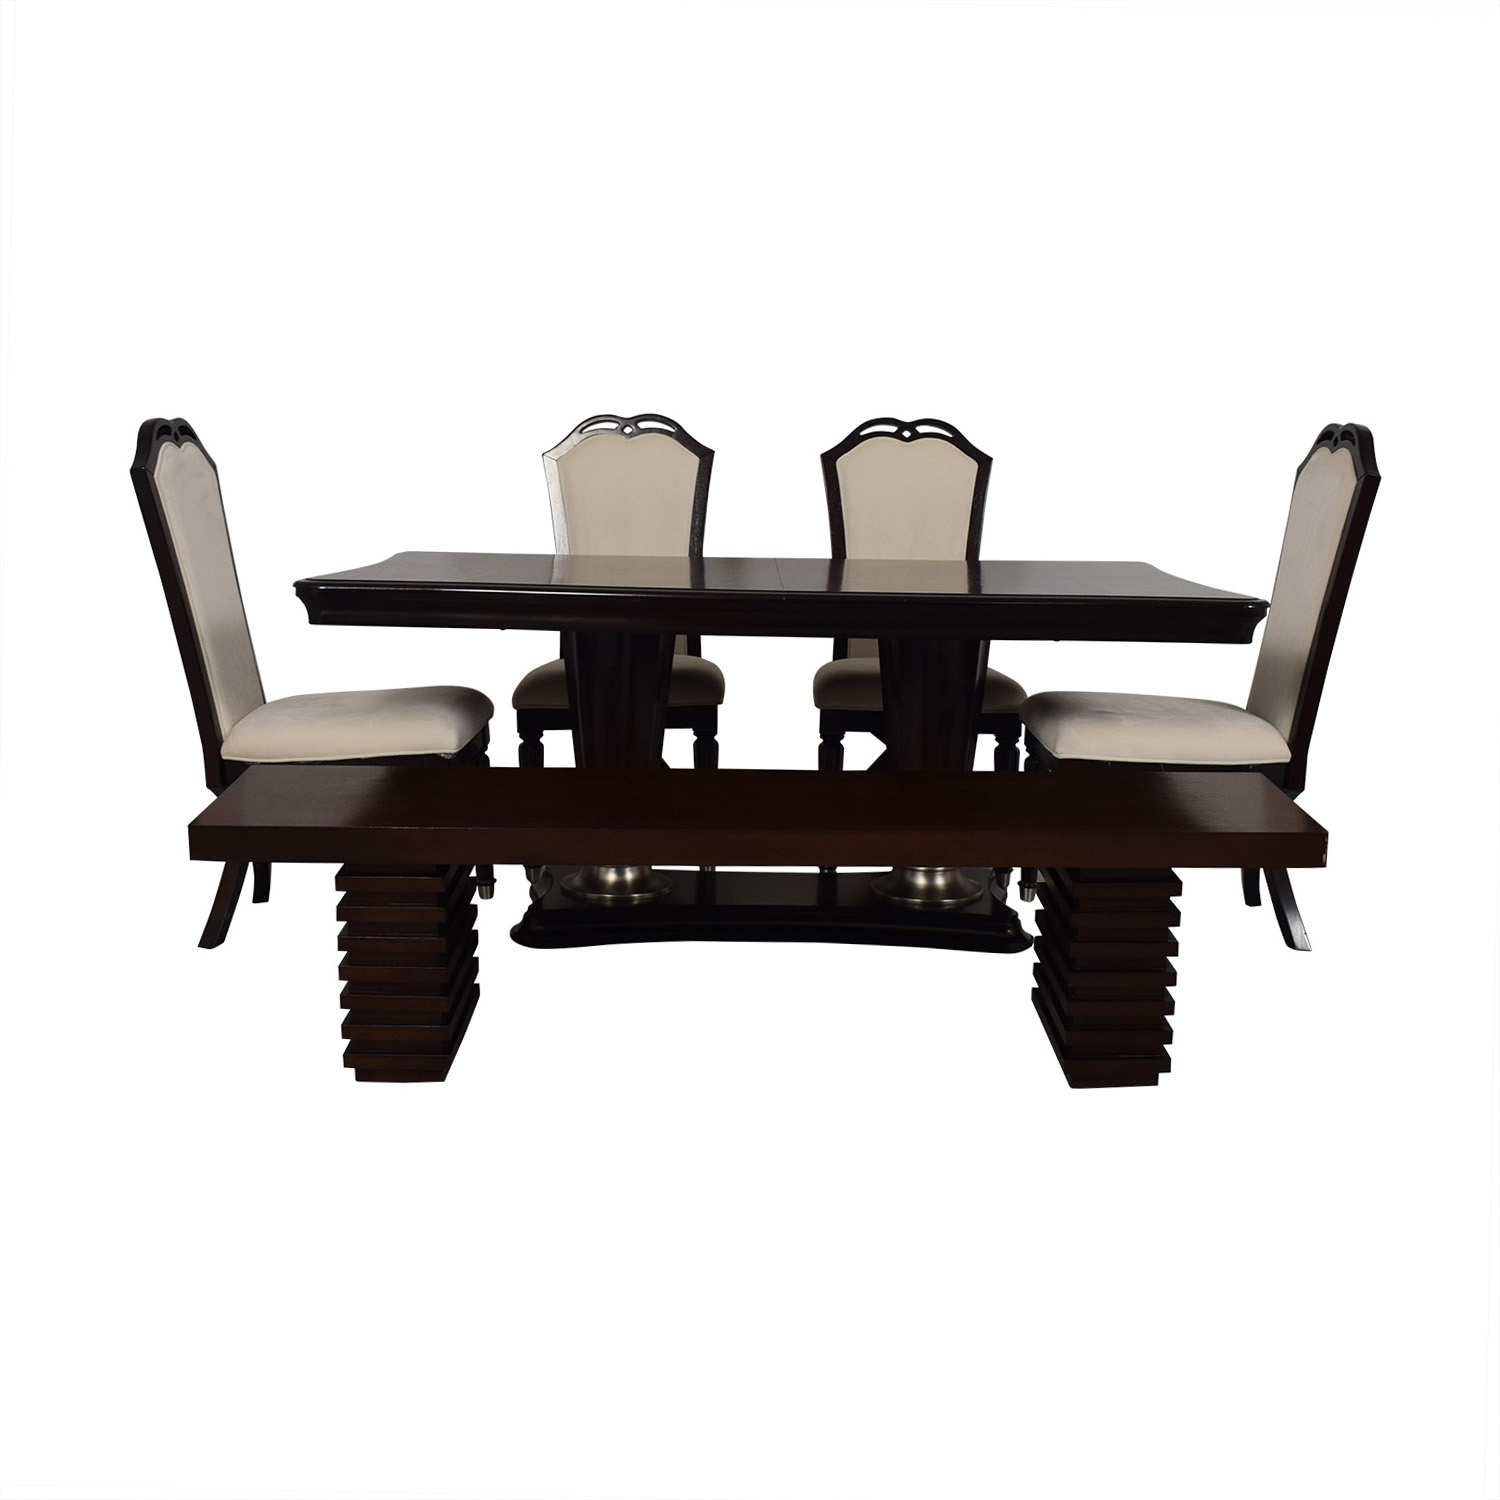 Raymour & Flanigan Raymour and Flanigan Extendable Dining Set with Bench for sale